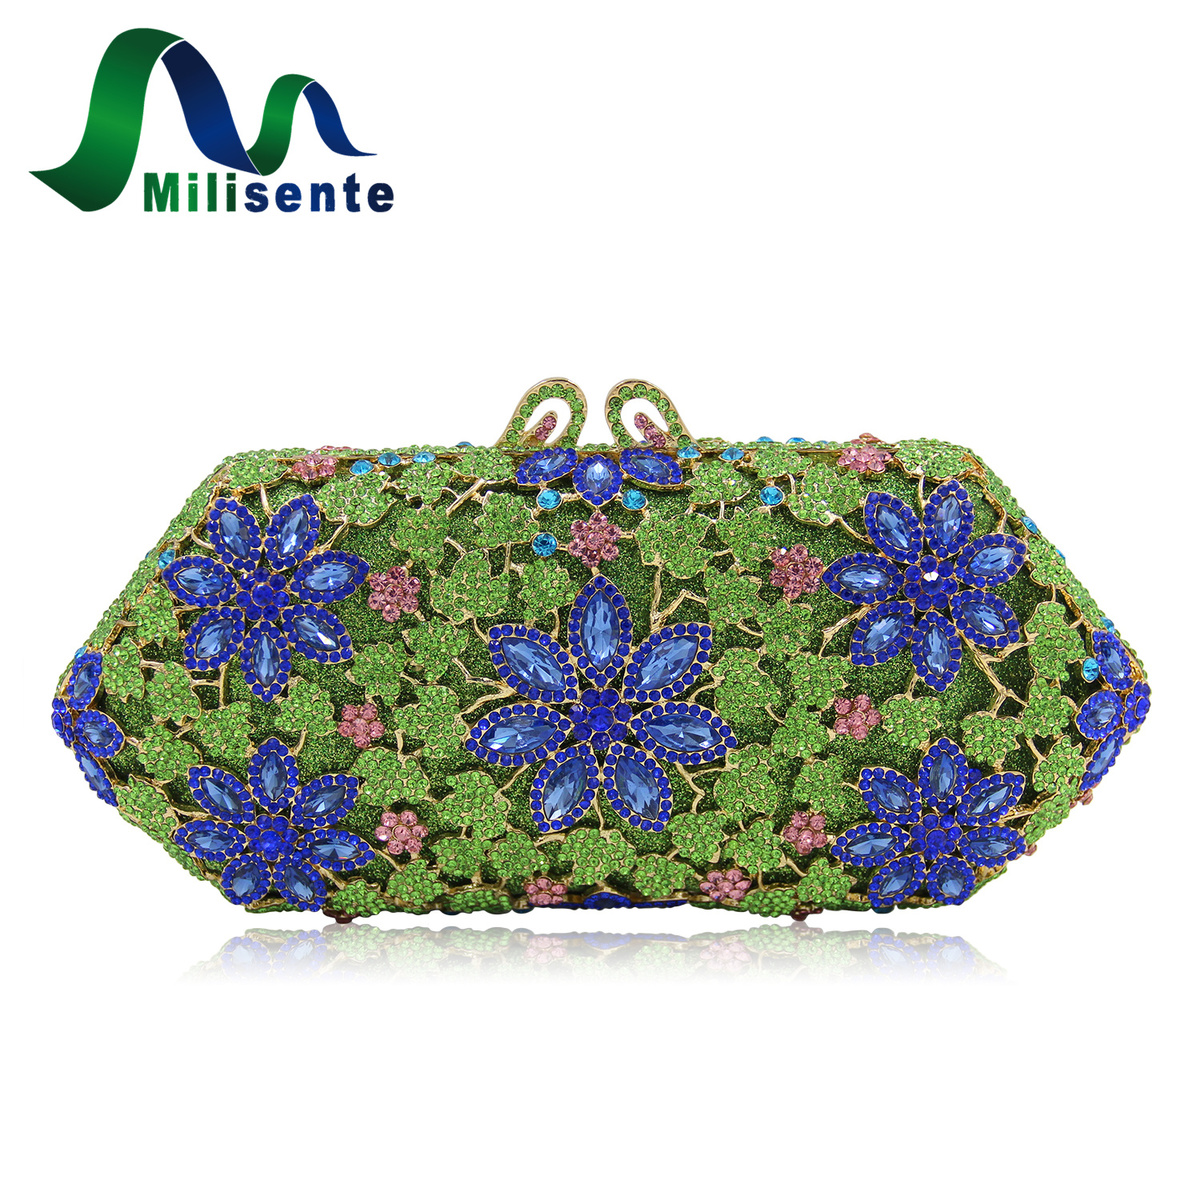 Milisente Luxury Floral Handbag Beautiful Hollow Style Crystal Wedding Hardcase Evening Clutch Purse Lady Party Bag milisente high quality luxury crystal evening bag women wedding purses lady party clutch handbag green blue gold white